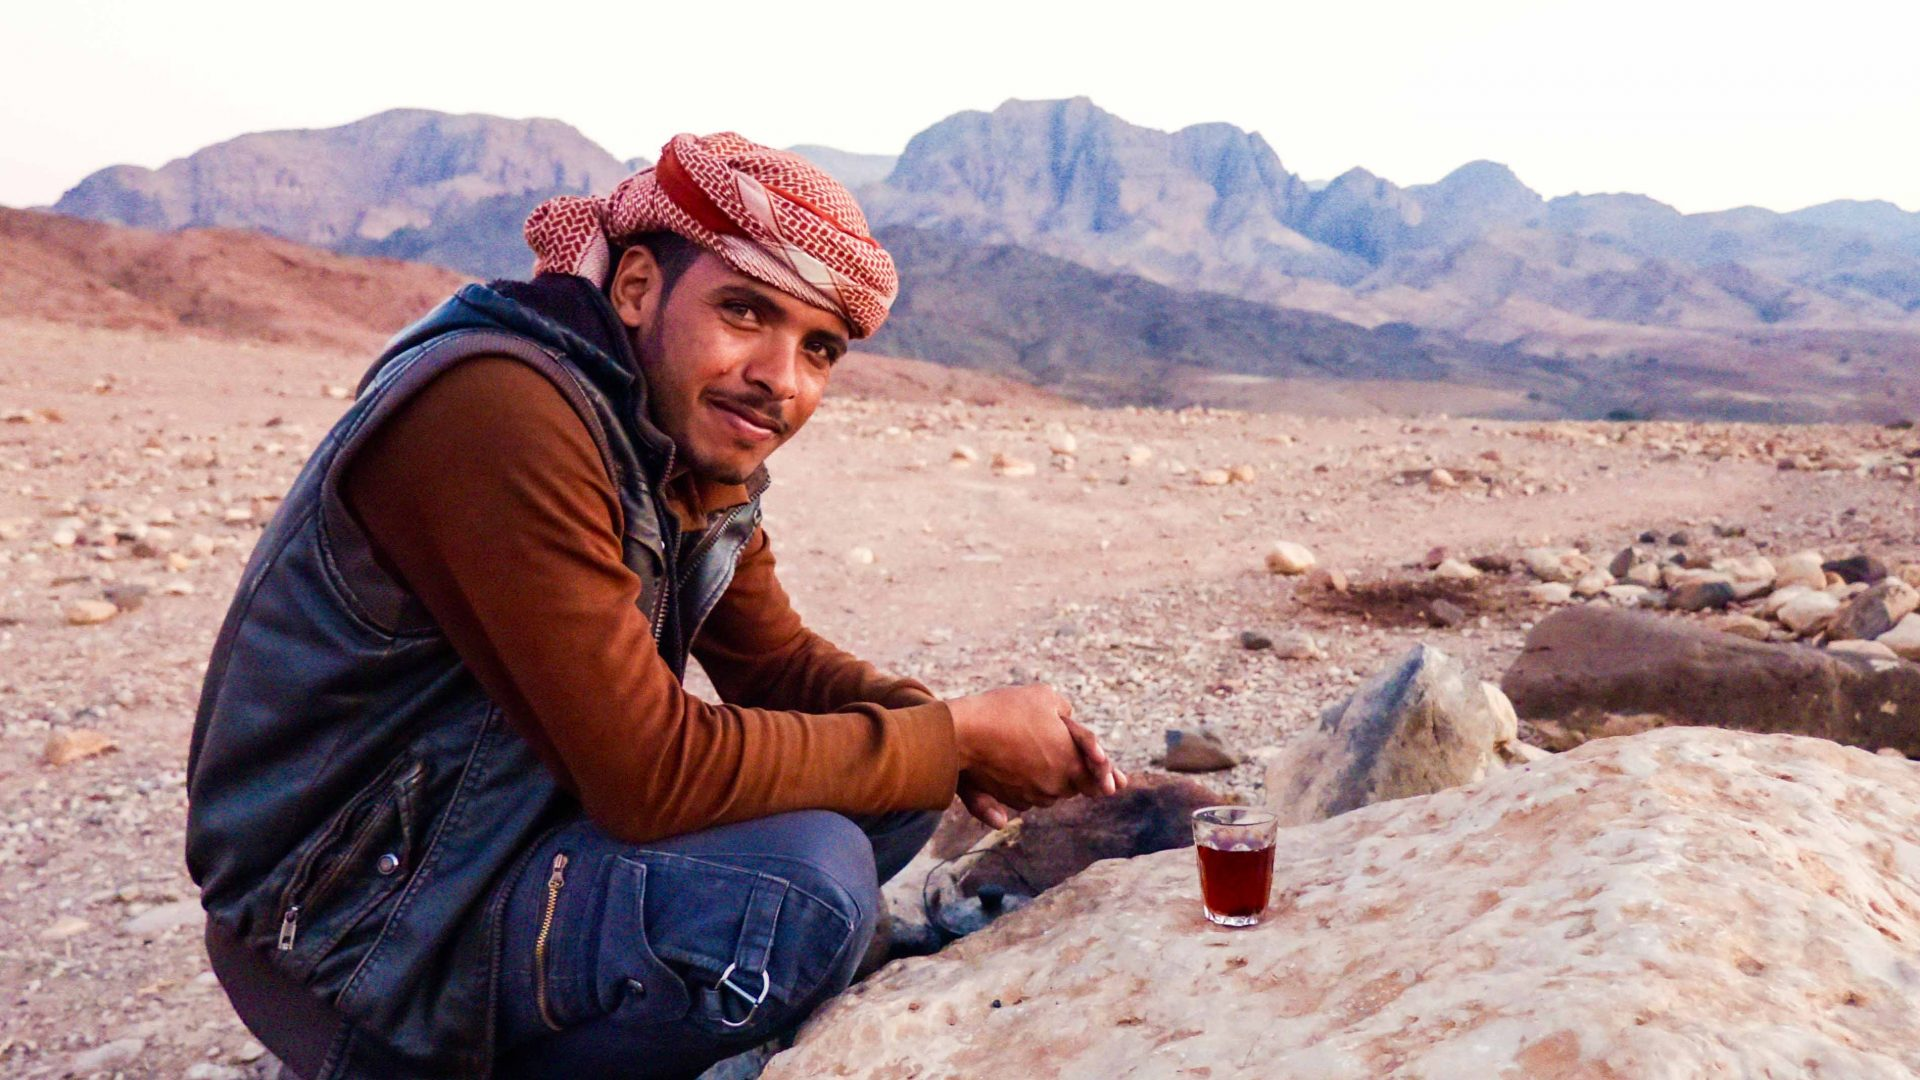 Meeting locals on your travels: a local man drinks tea in Jordan.